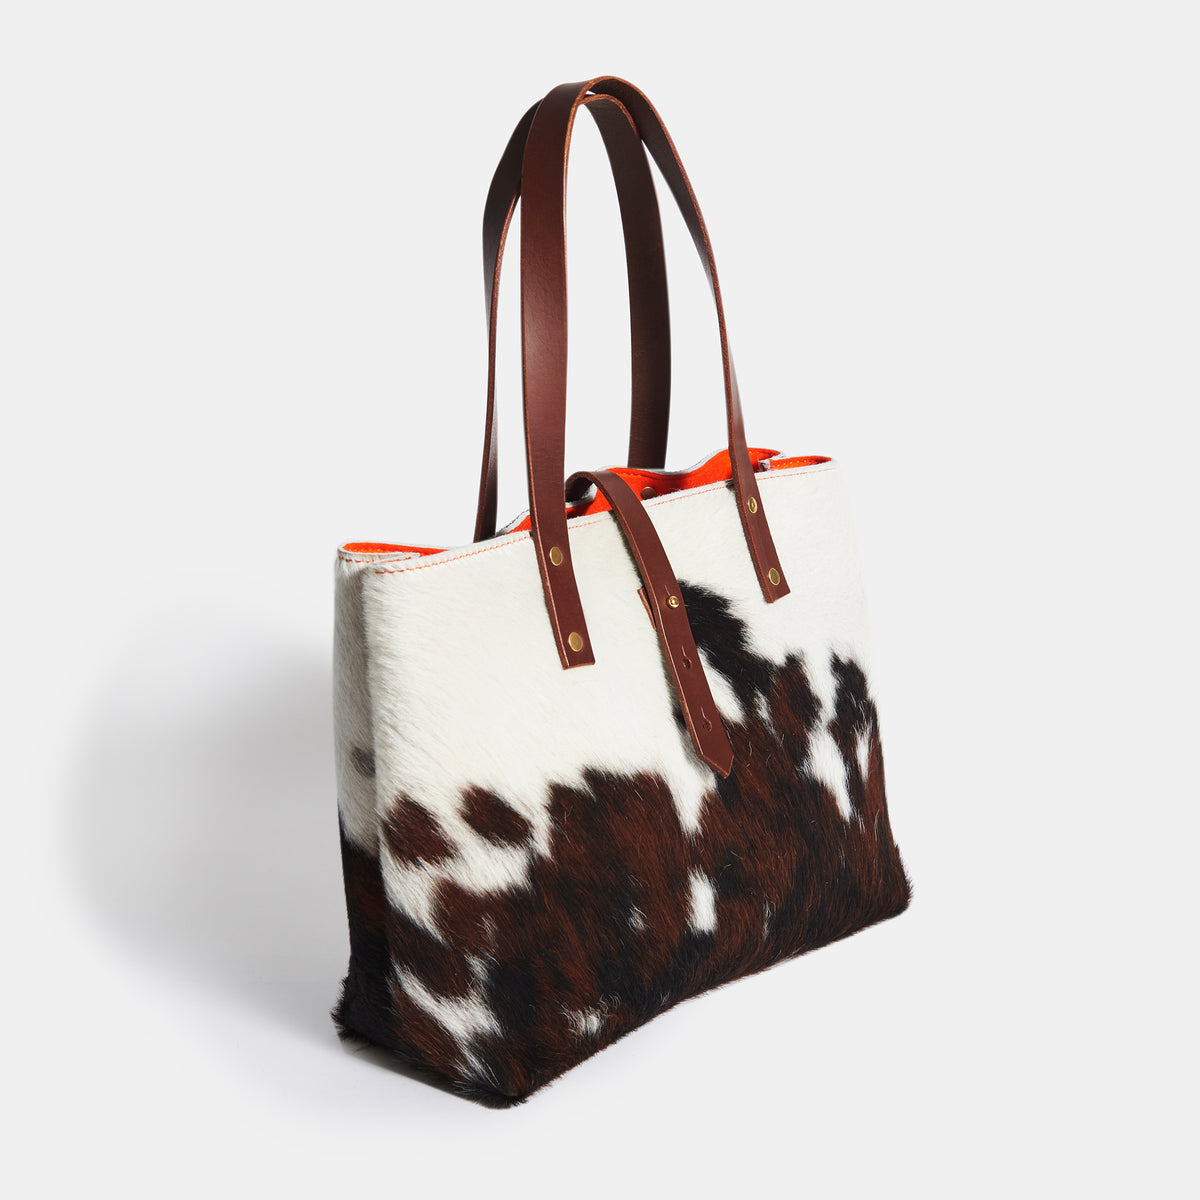 Hair-on Tote Bag